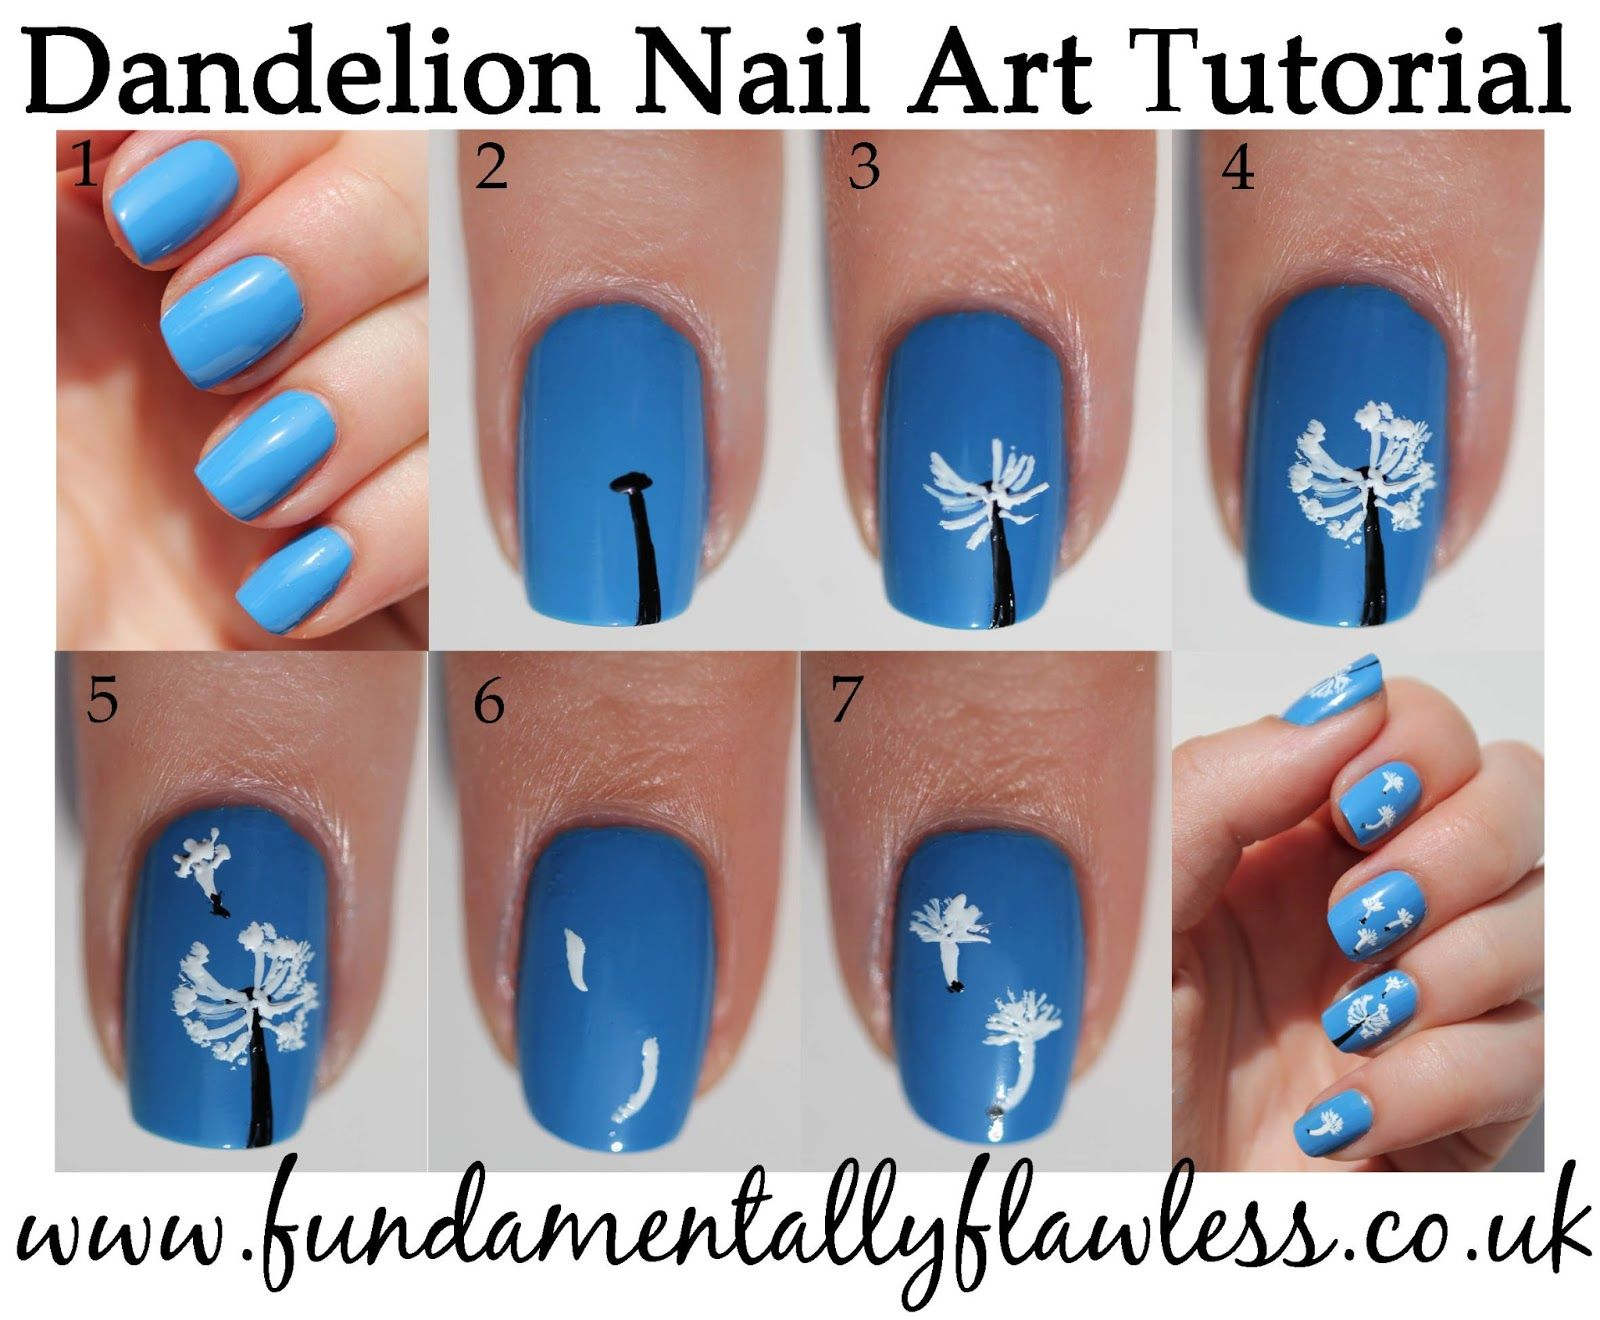 Spring nail art tutorials for women pretty designs nails spring nail art tutorials for women pretty designs prinsesfo Choice Image